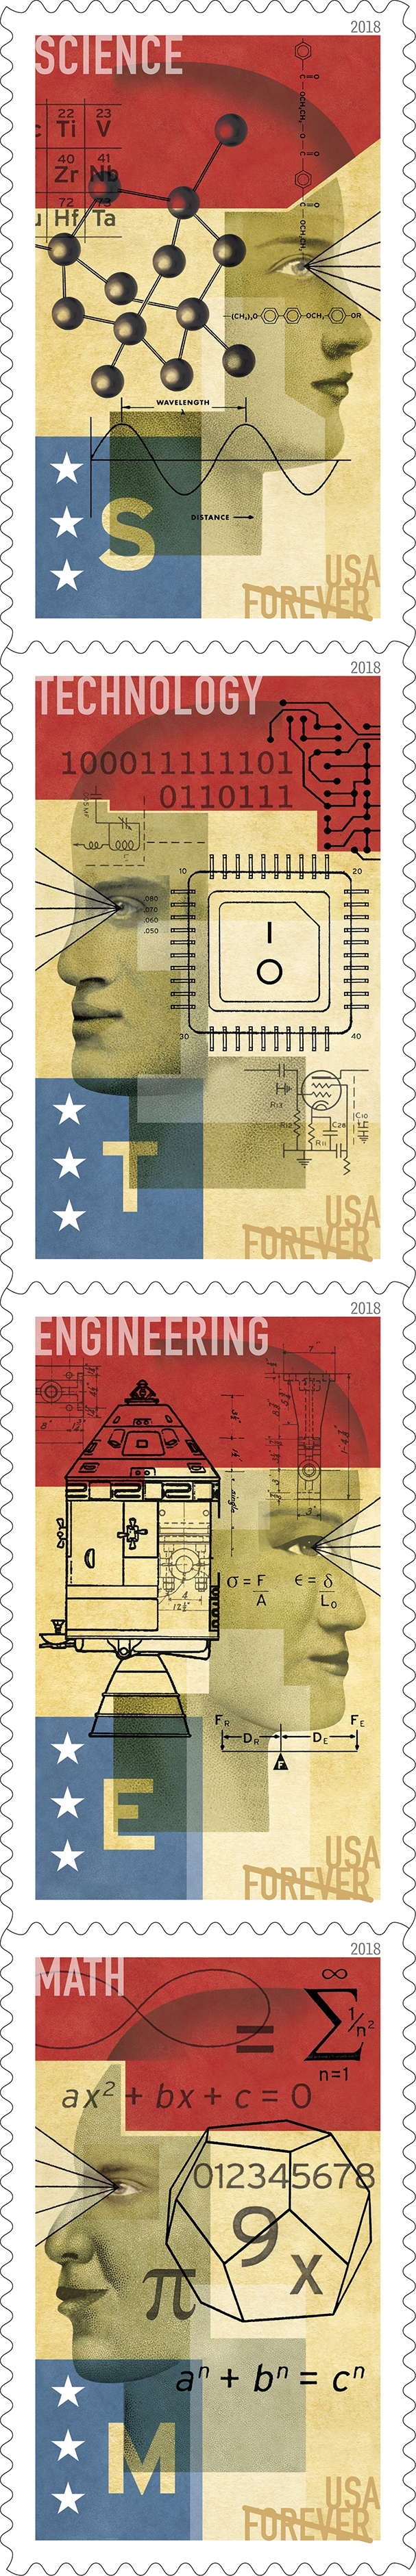 STEM Education: These Forever stamps celebrate the role of science, technology, engineering and mathematics (STEM) education in keeping our nation a global leader in innovation. Designed to pique the curiosity of the viewer, each of these four stamps features a collage of faces, symbols, drawings and numbers that represent the complexity and interconnectedness of the STEM disciplines. (USPS)